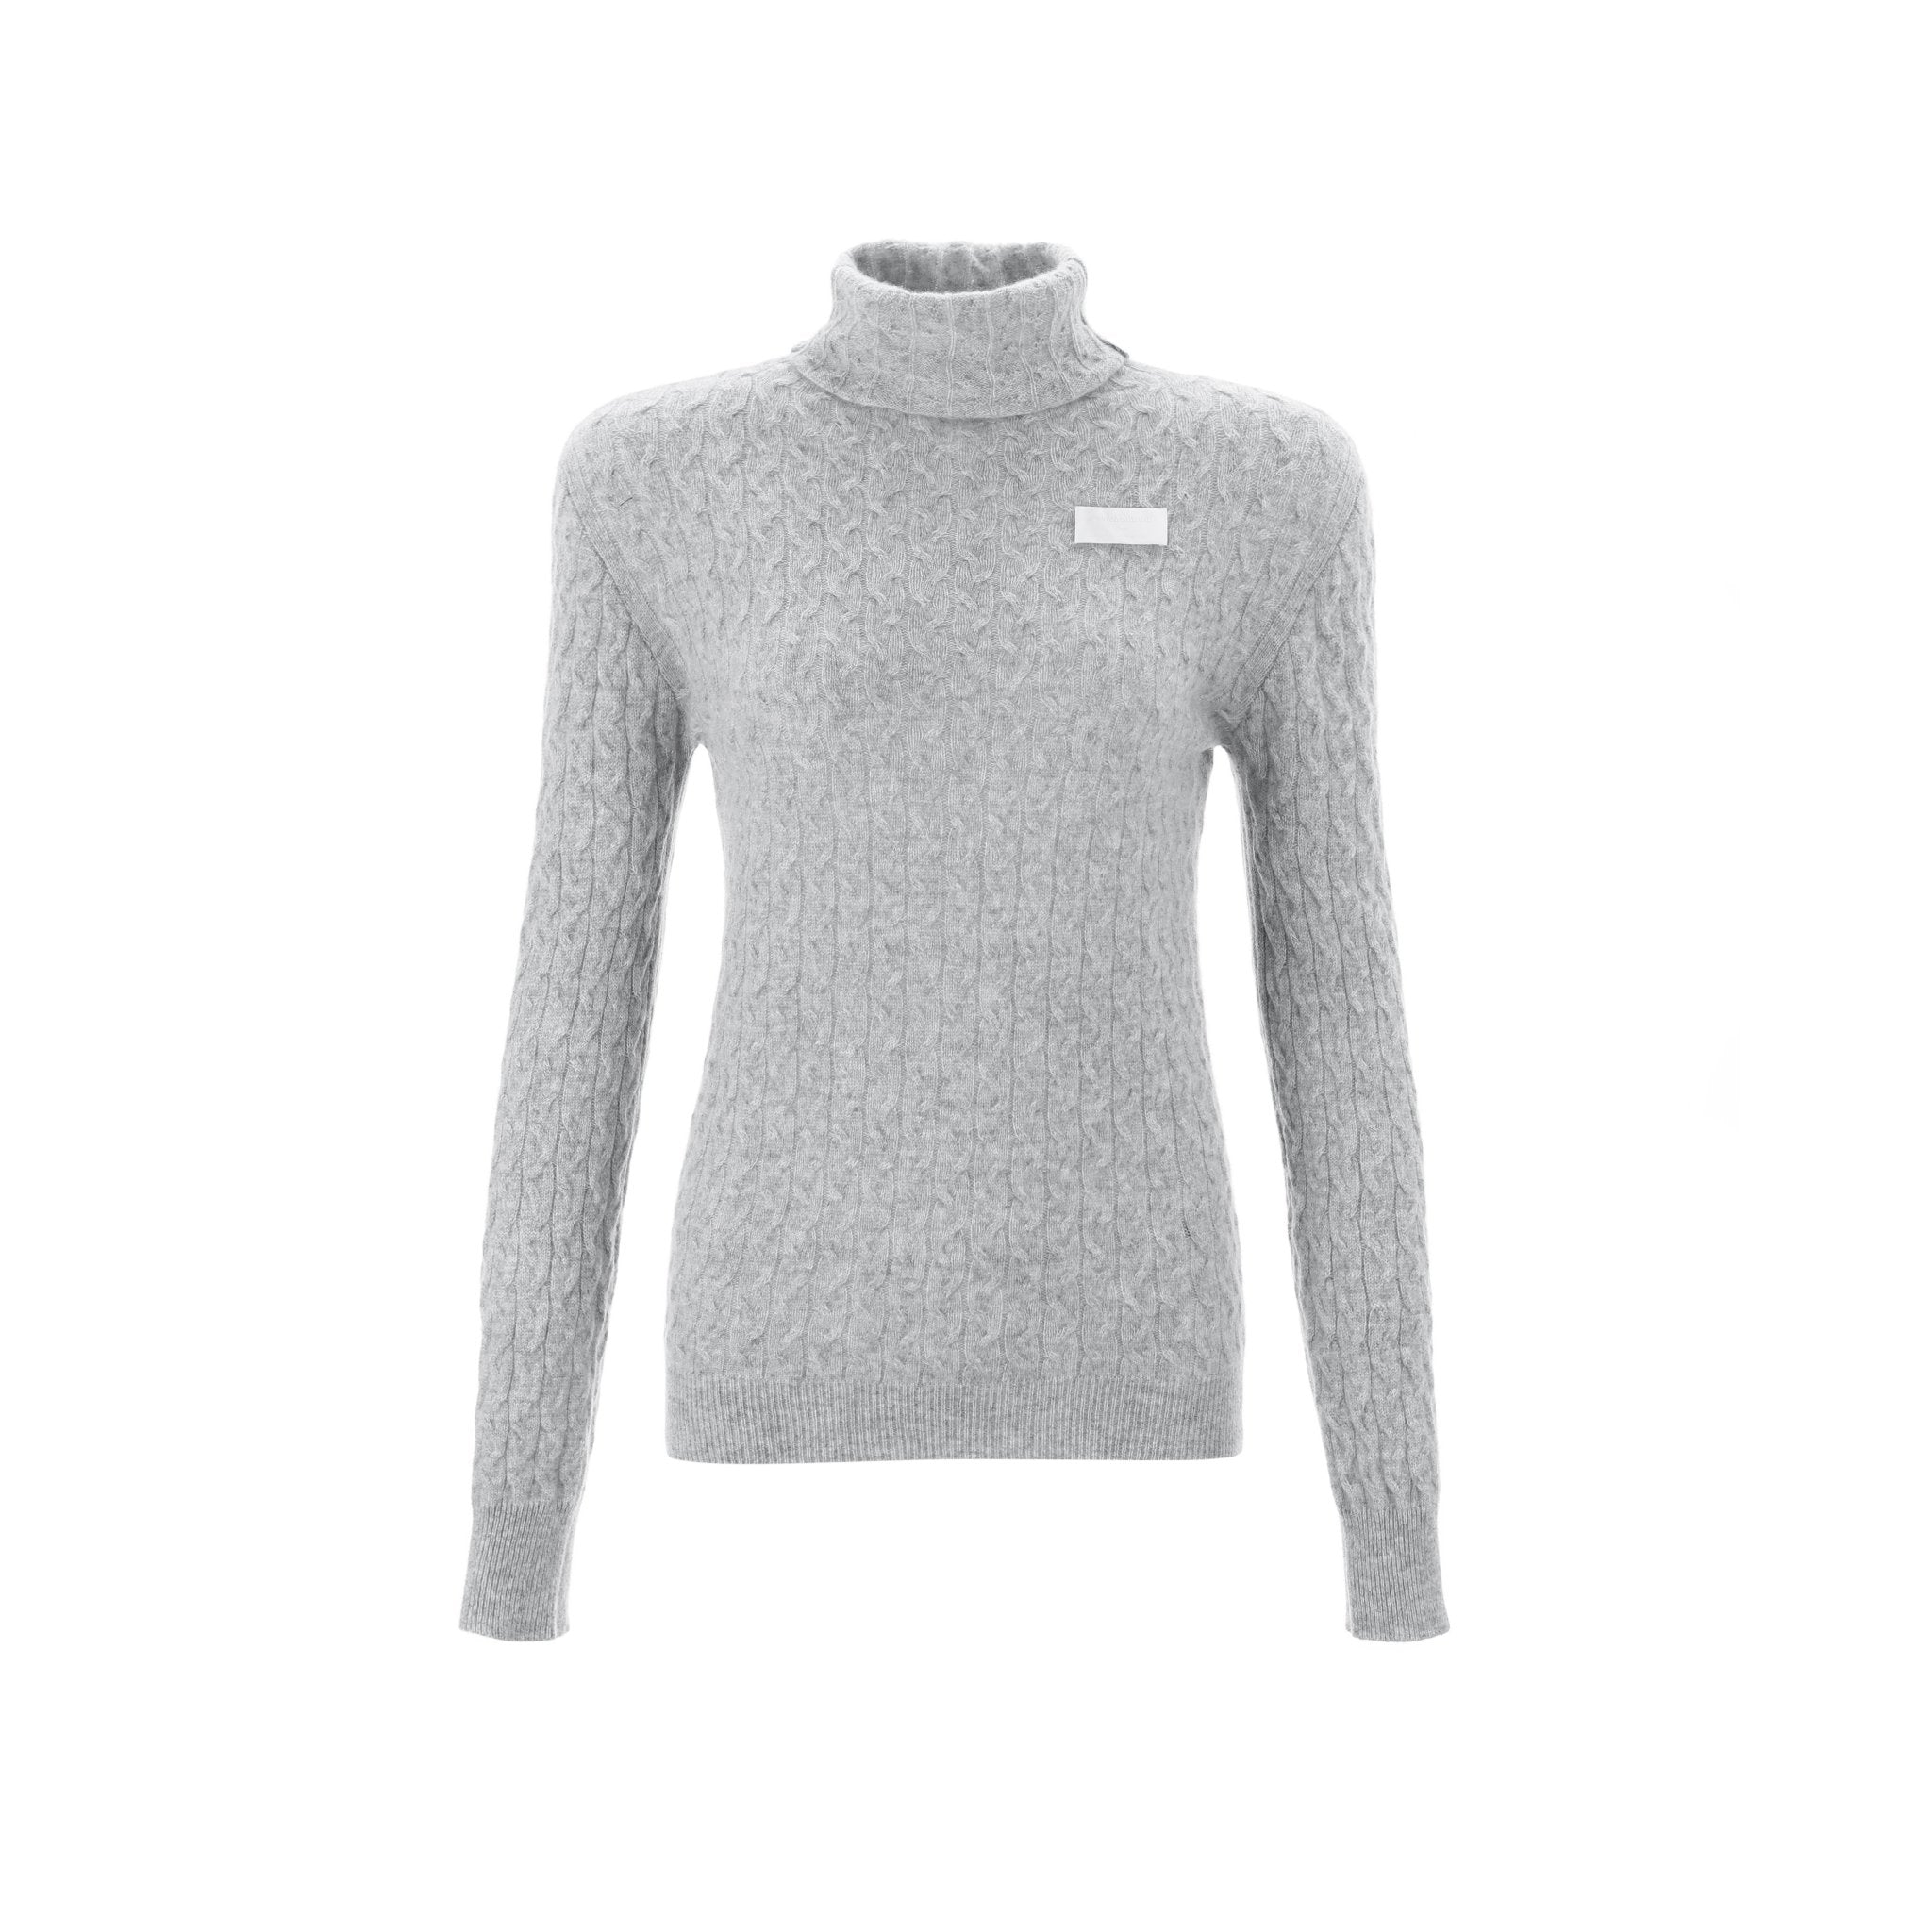 WARM AID Grey Cashmere Turtleneck Sweater | MADA IN CHINA